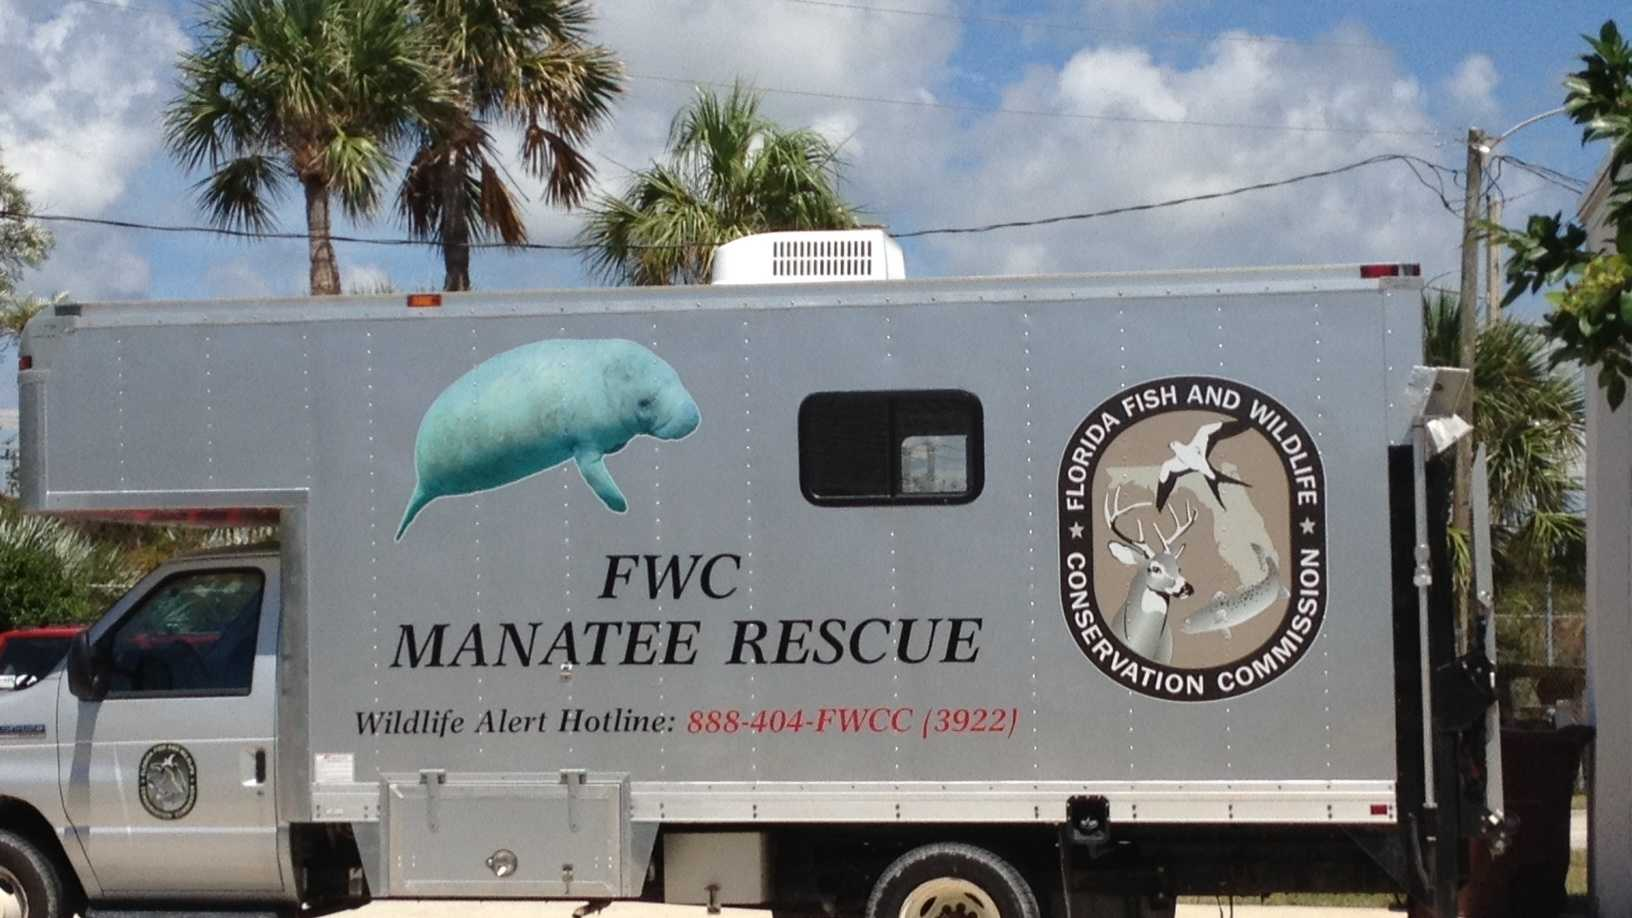 Manatee Rescue vehicle